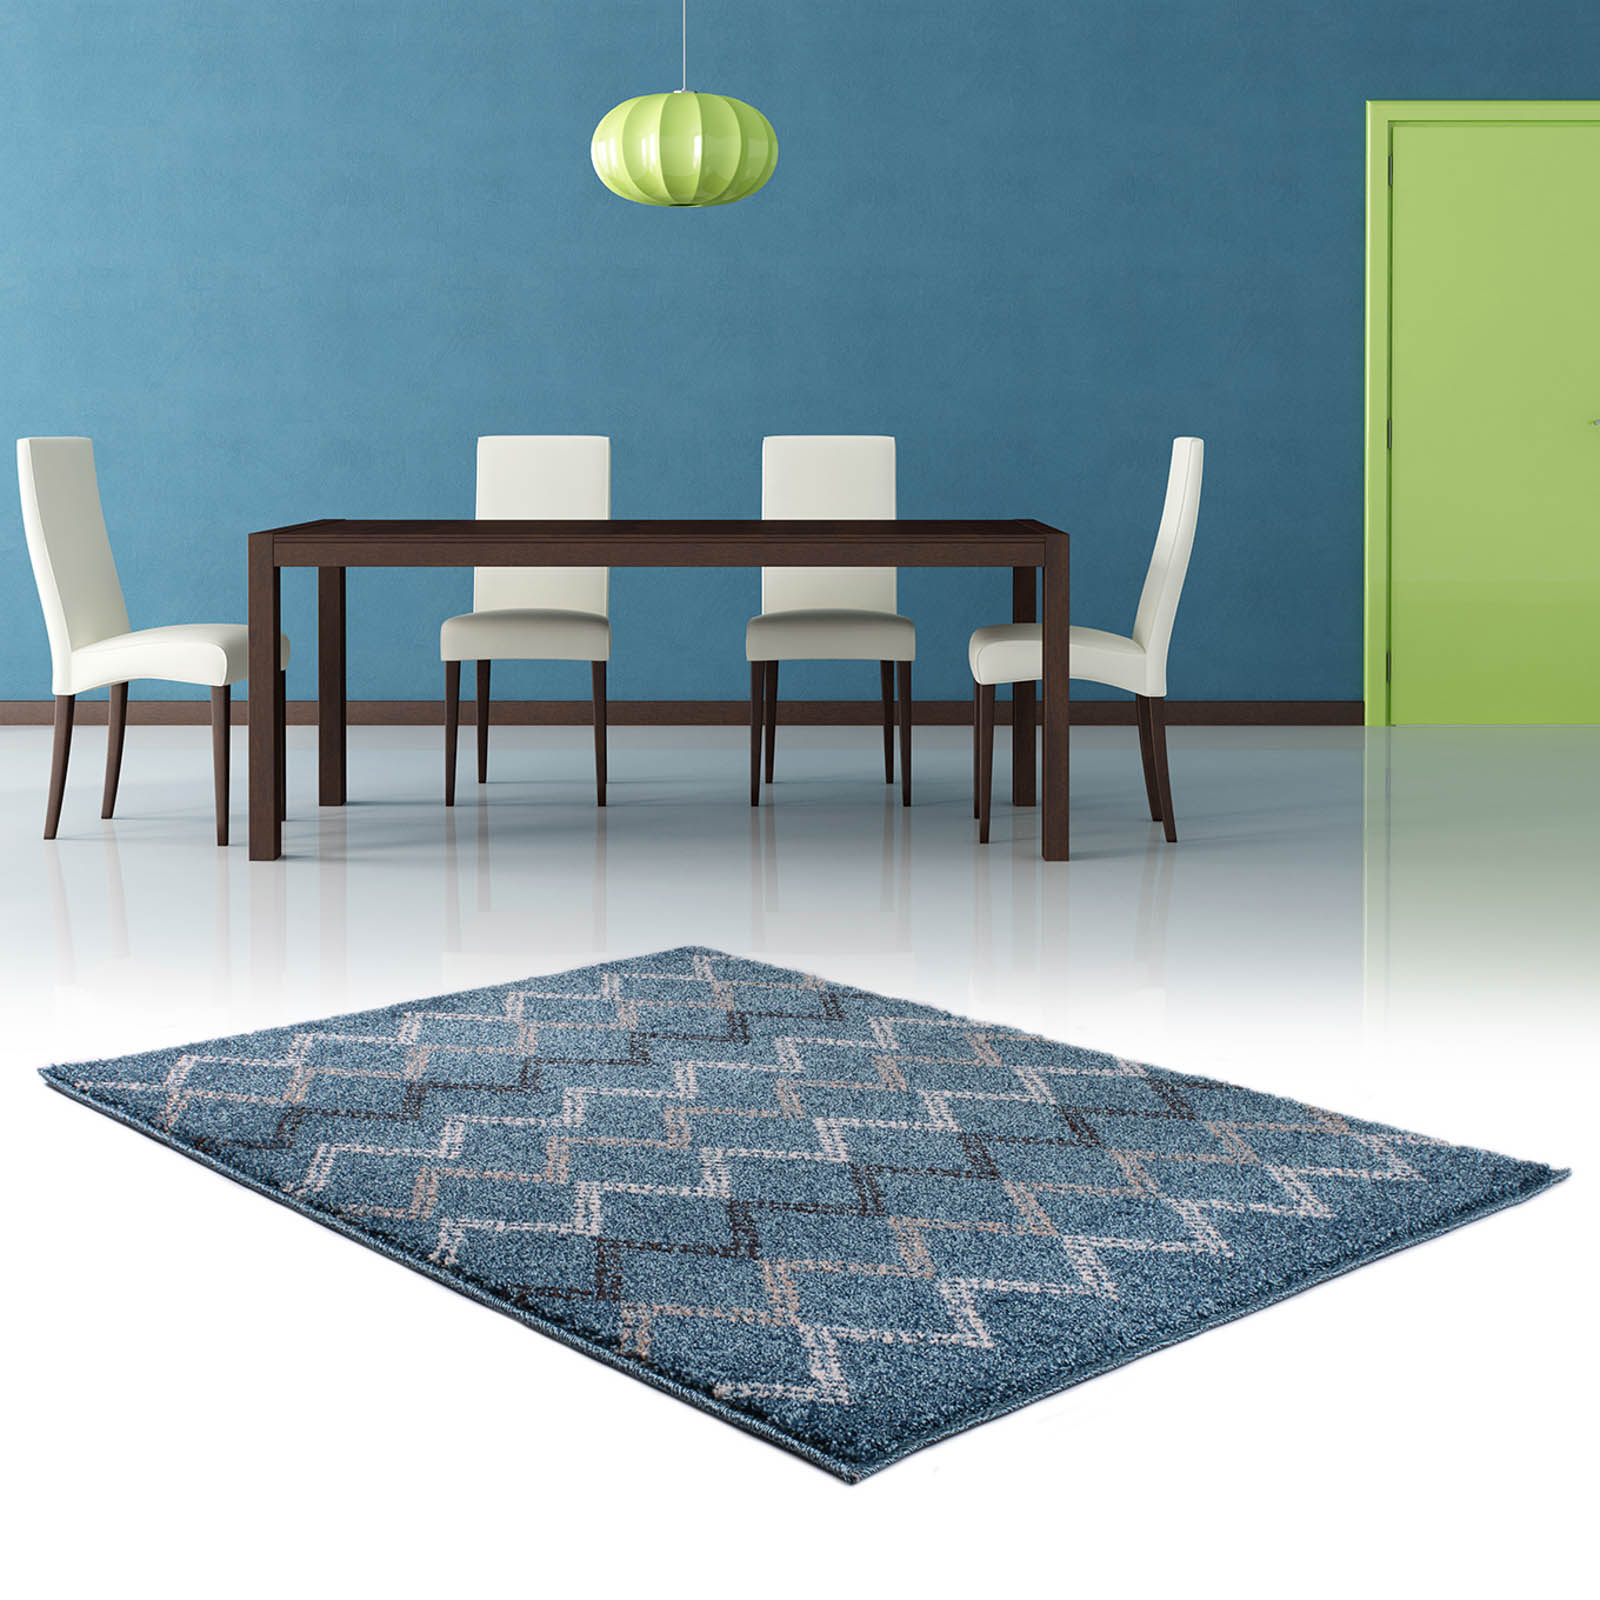 Marrakesh Rugs 2651 in Blue and Brown